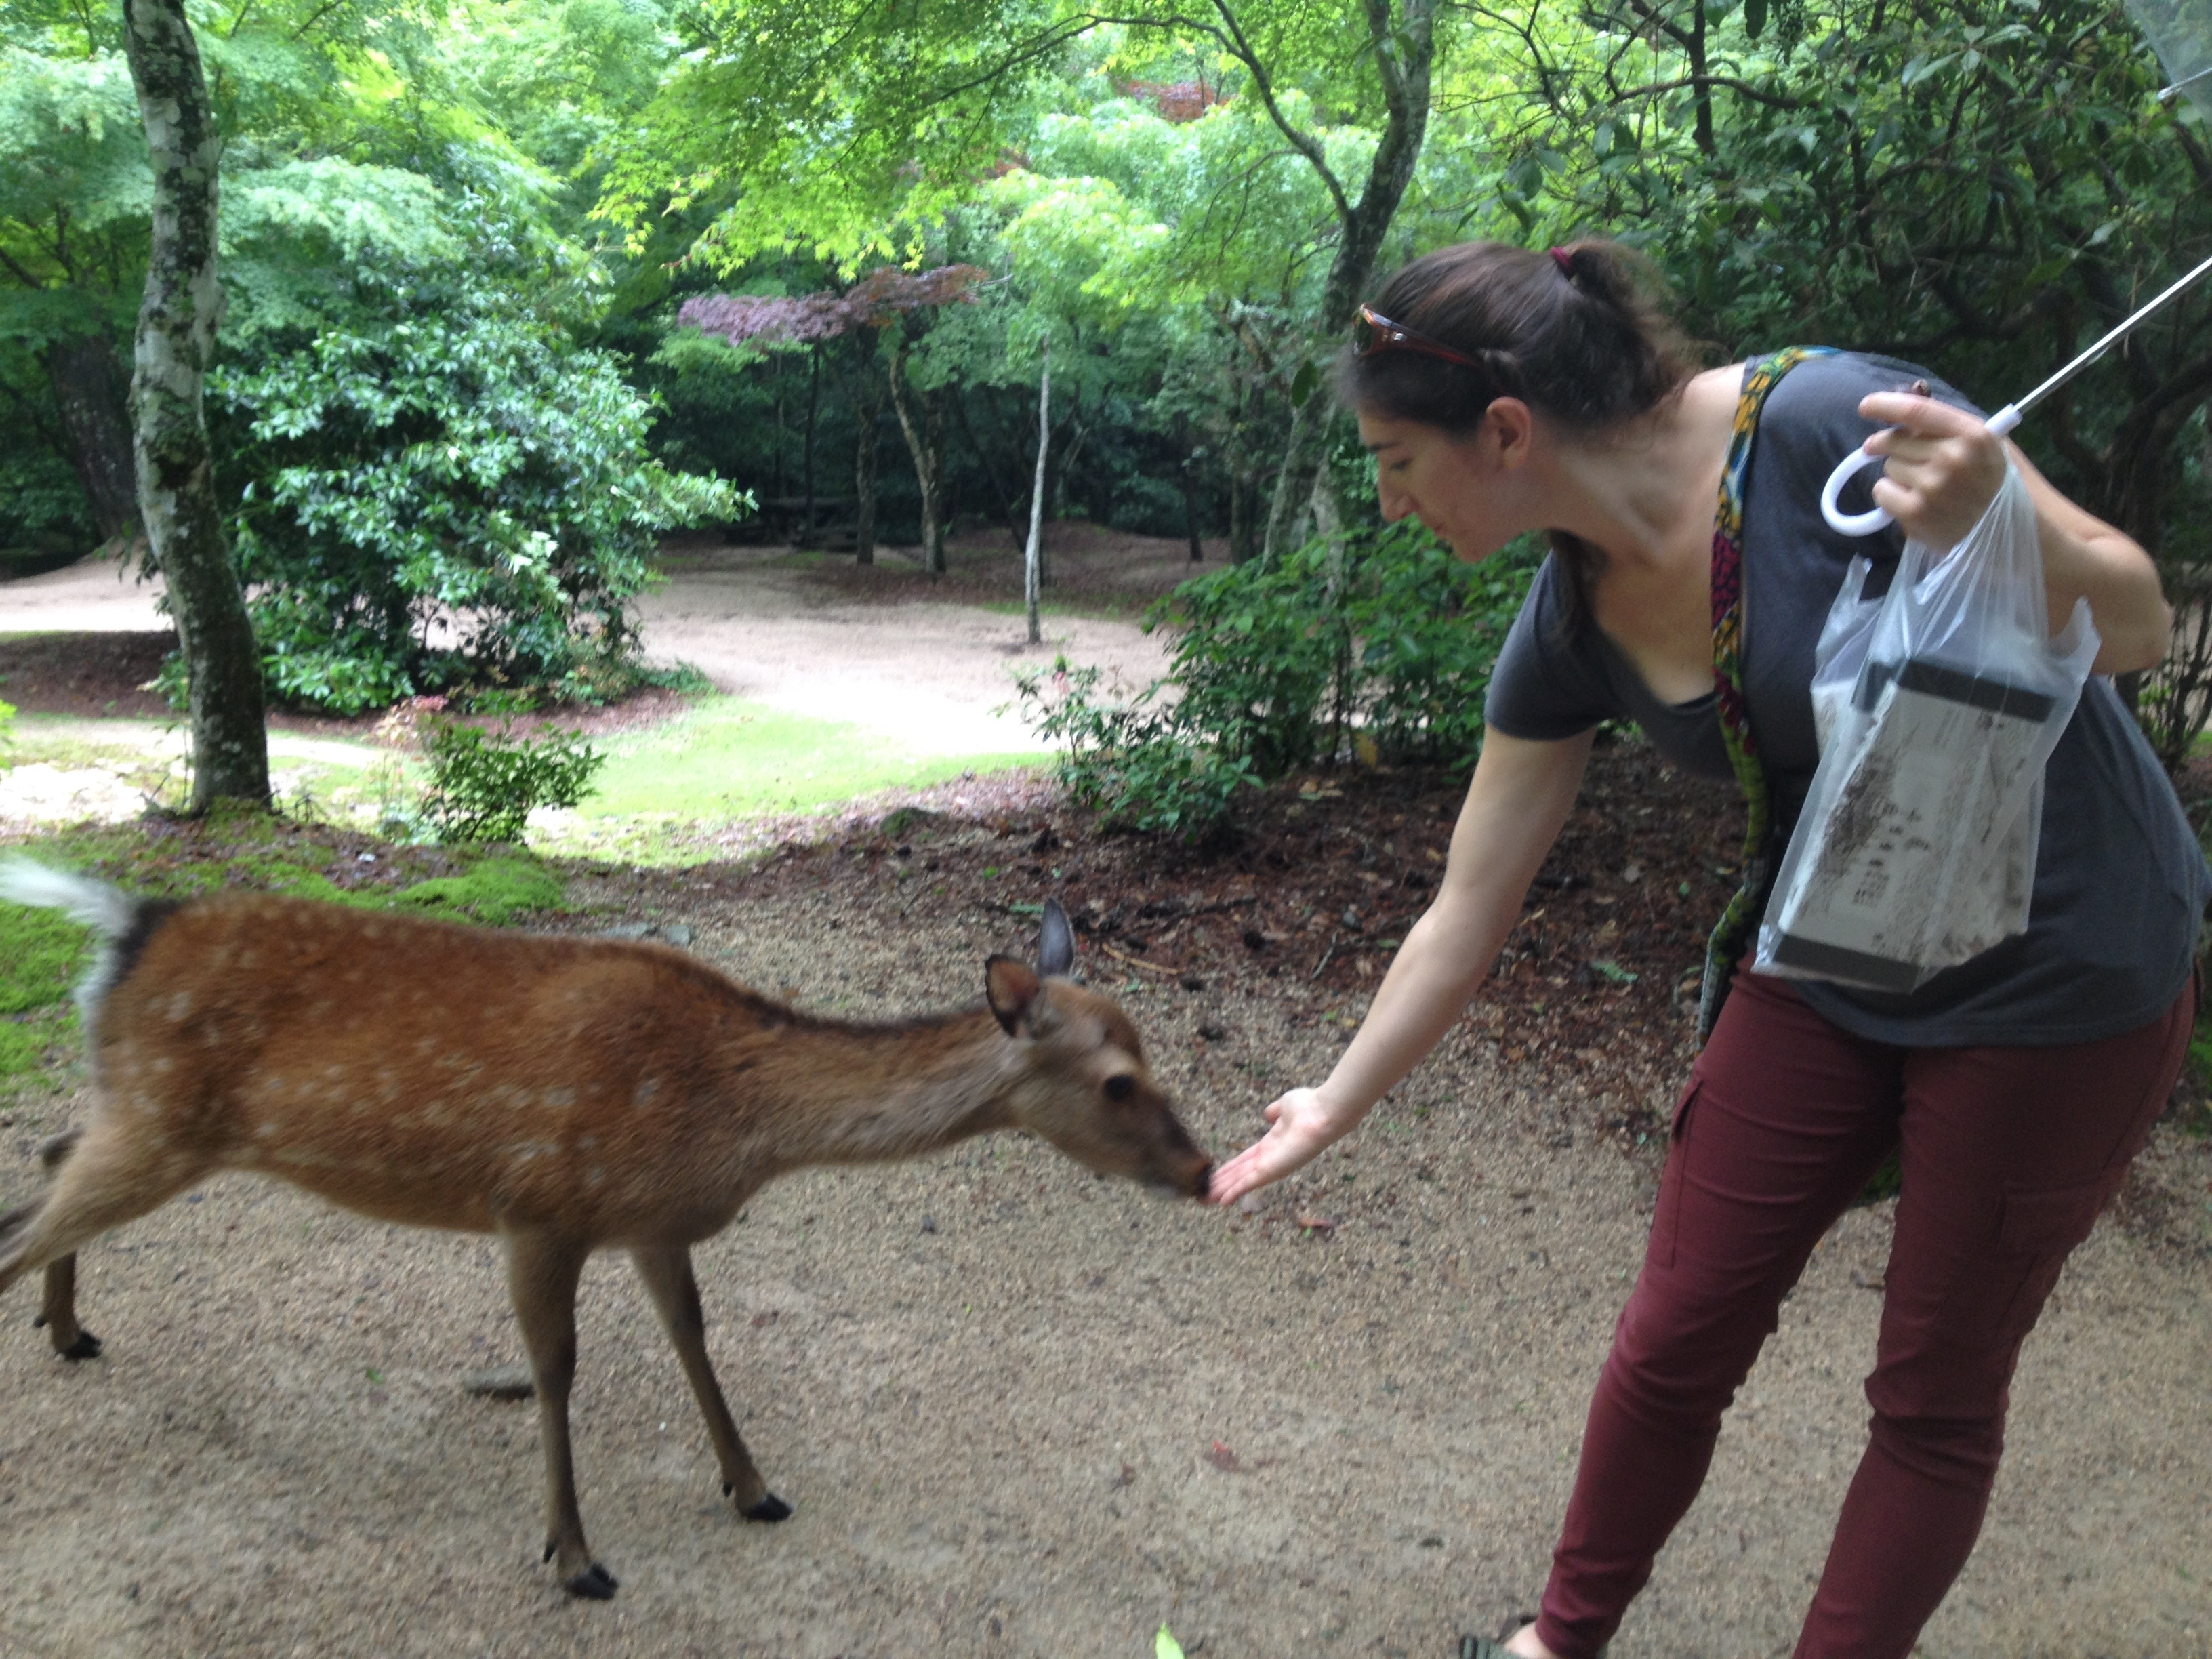 Curious deer in Japan